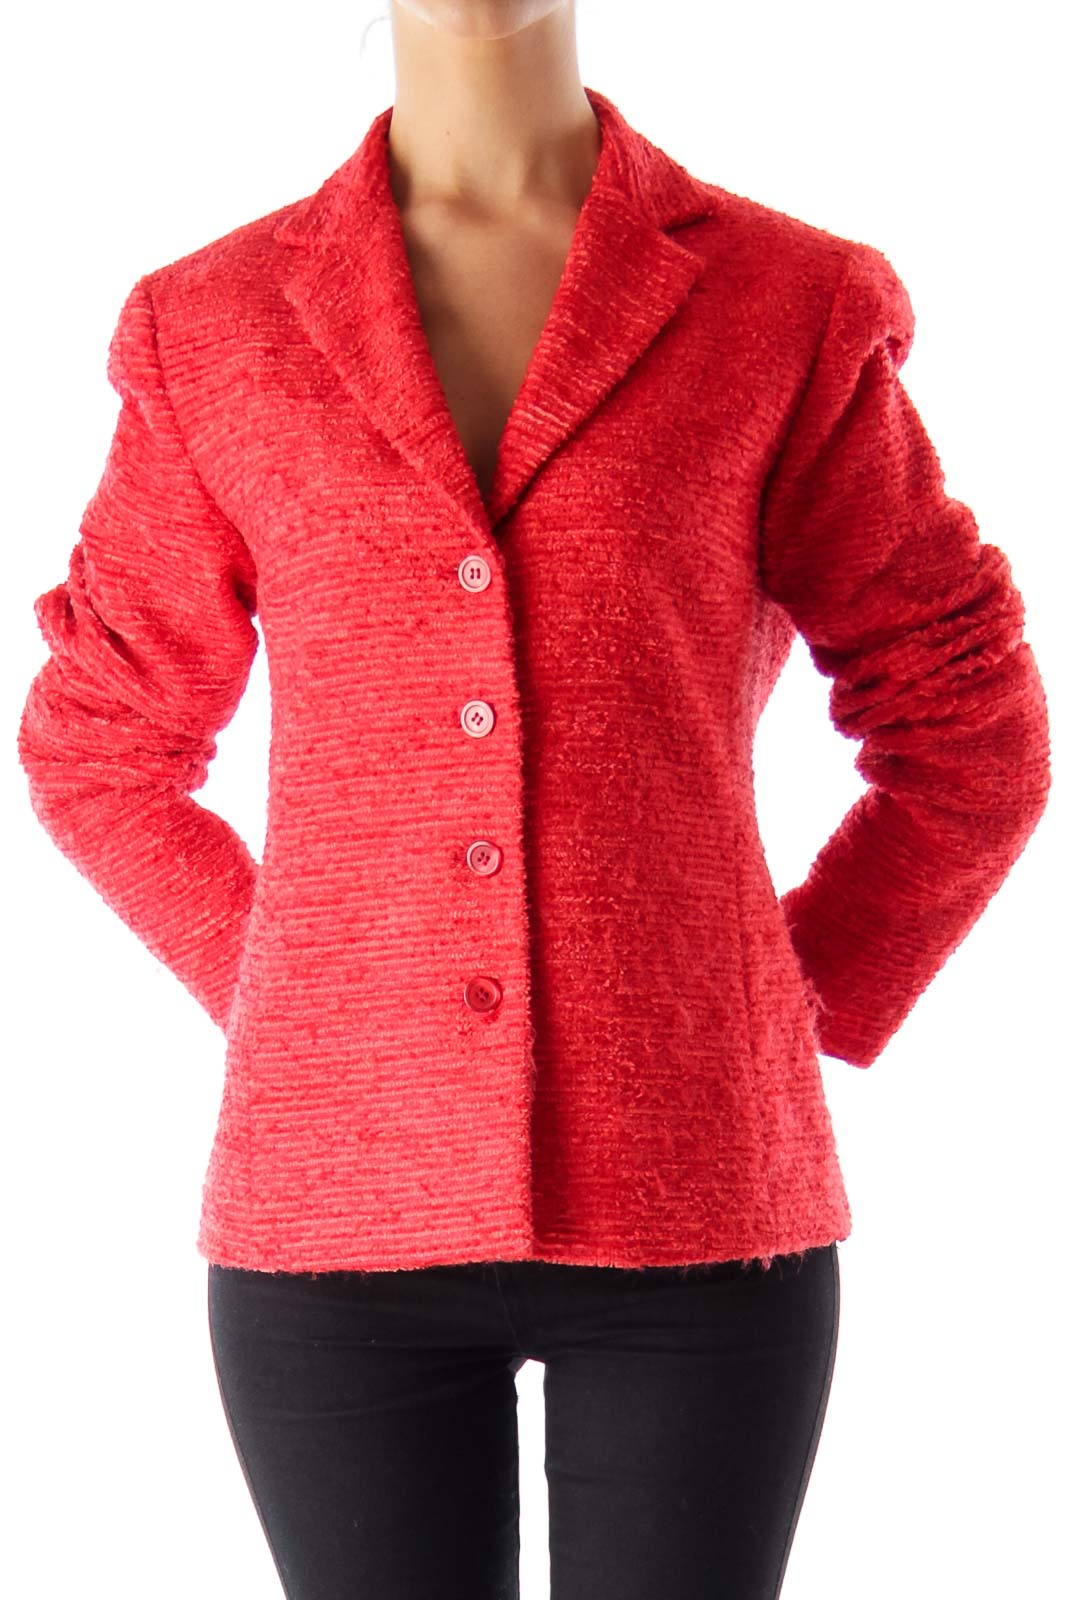 Red Texture Jacket Front